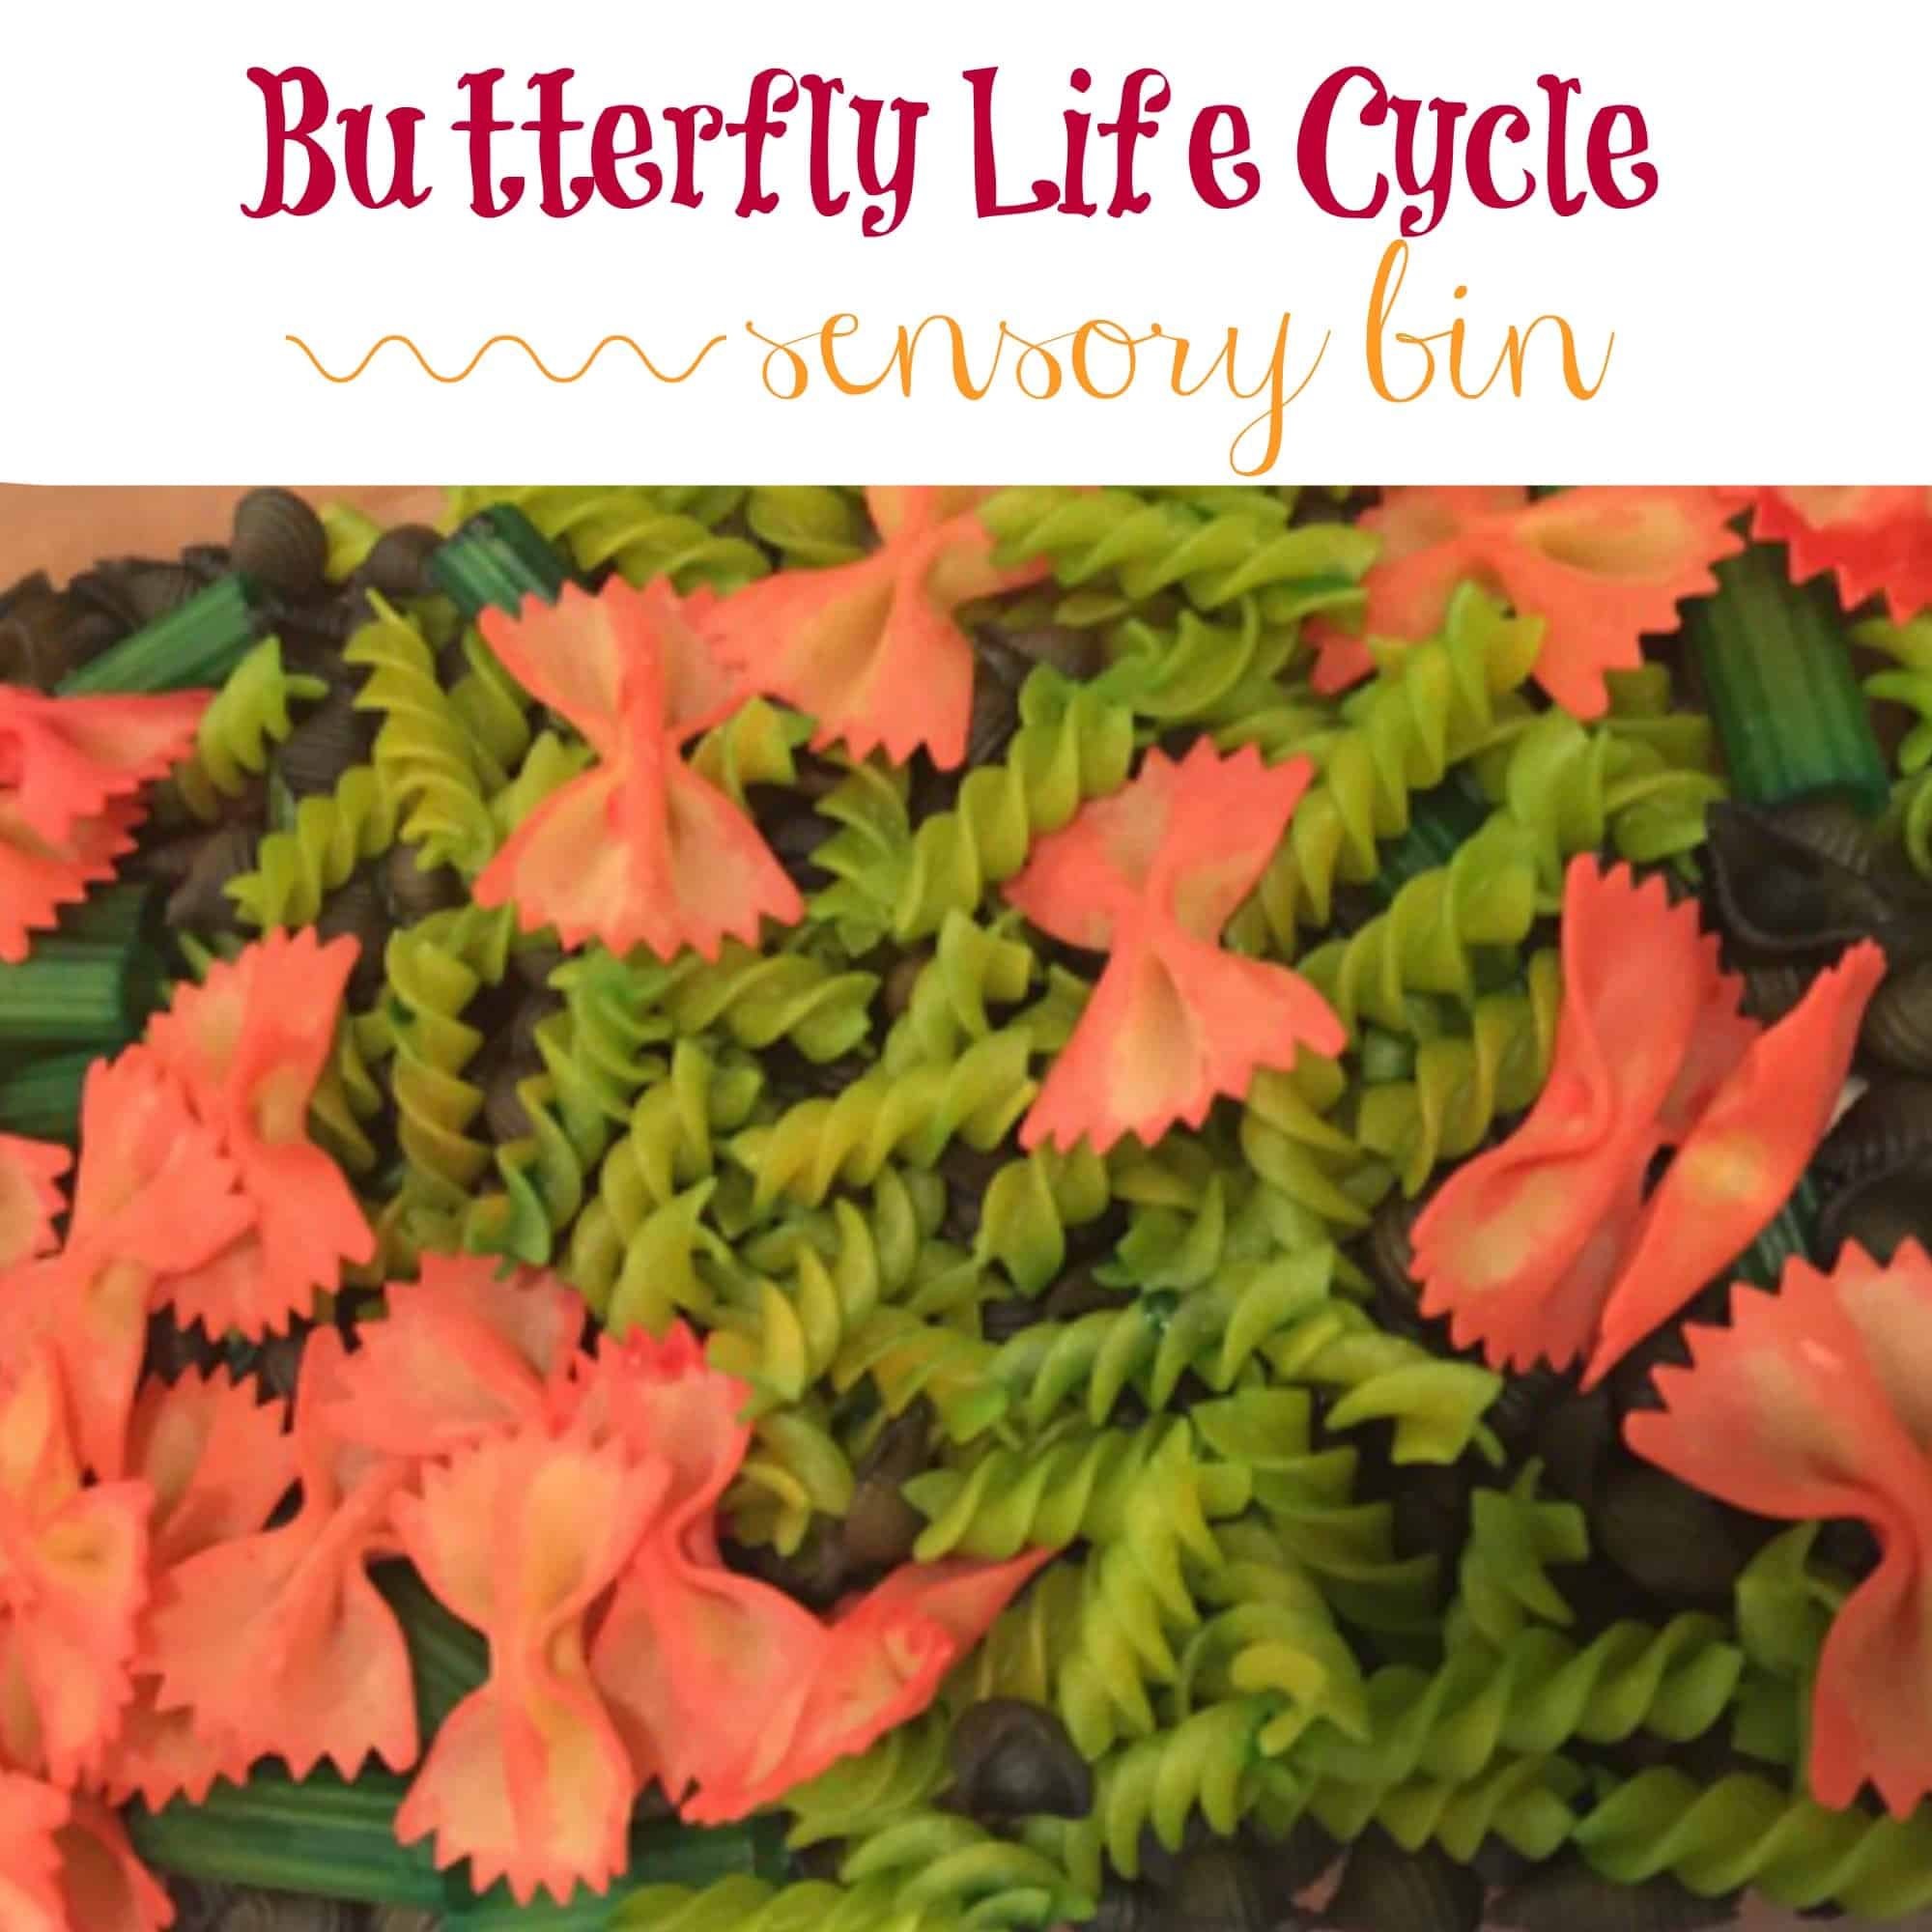 Use pasta shapes to create a super fun and educational butterfly life cycle sensory bin!